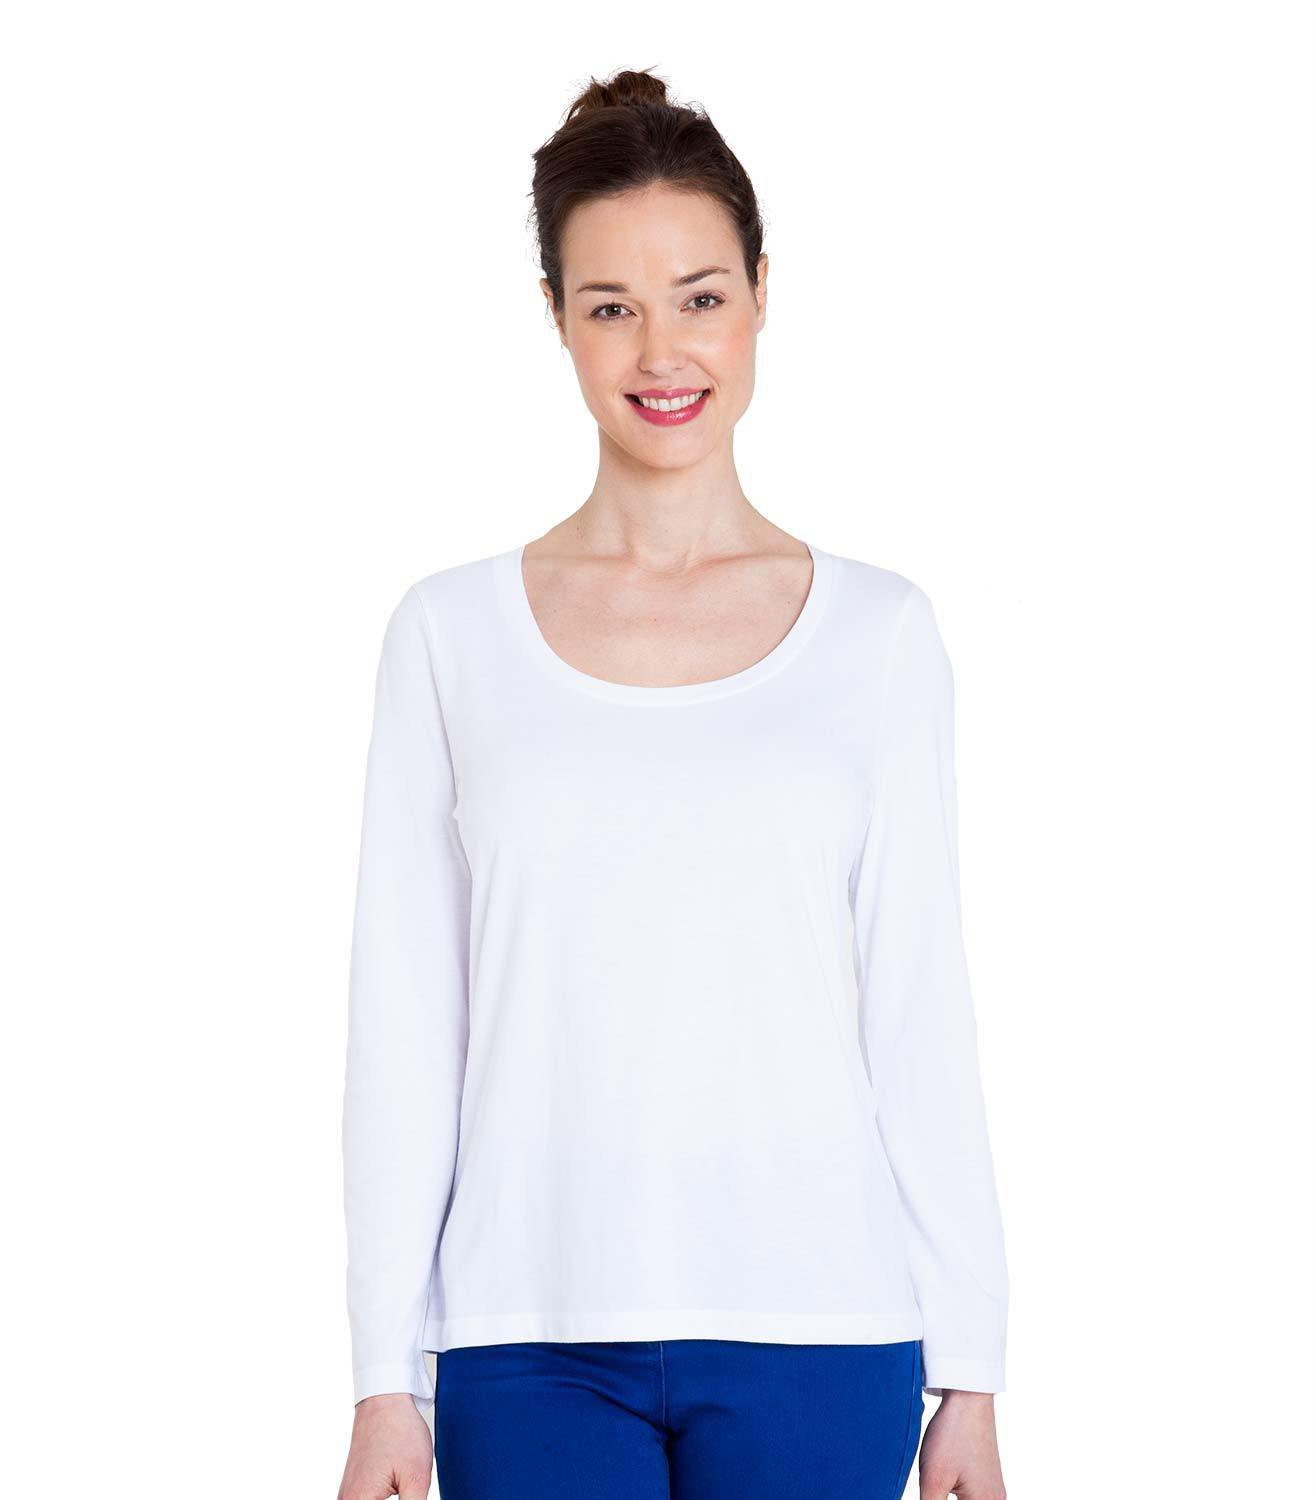 WoolOvers Womens Jersey Long Sleeve Scoop Neck Casual T-Shirt Tee Top